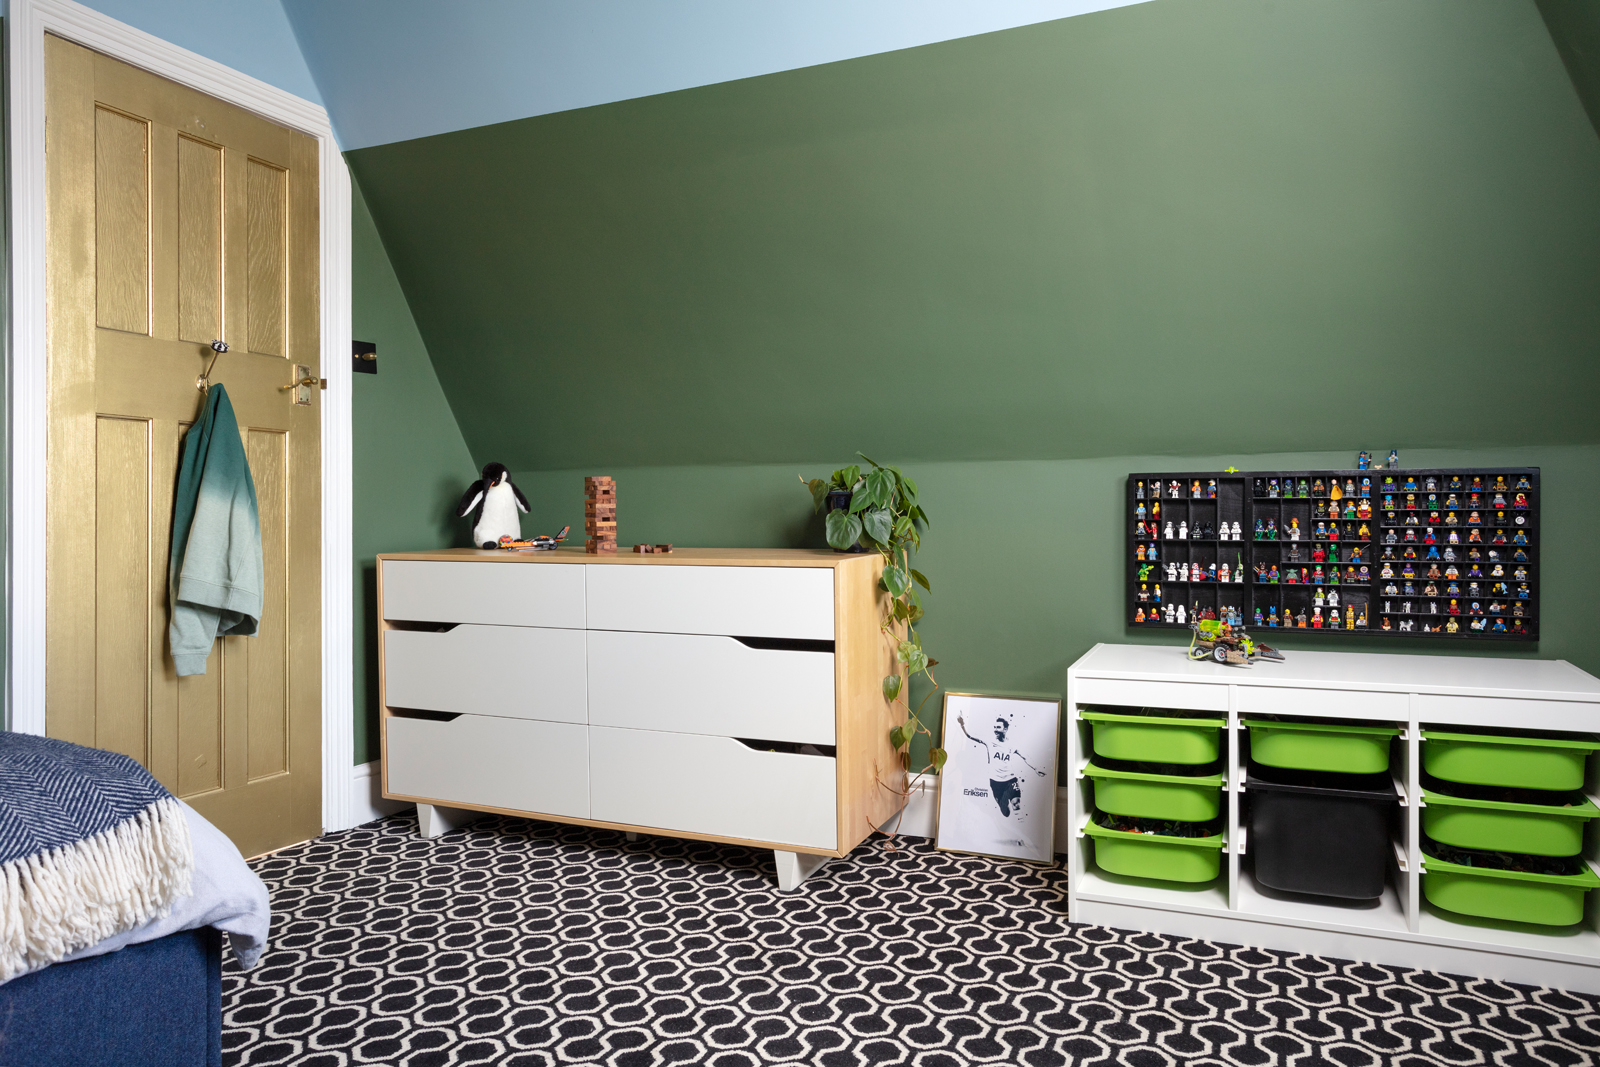 Ikea chest of drawers and Trofast Lego storage looking cool in a child's bedroom